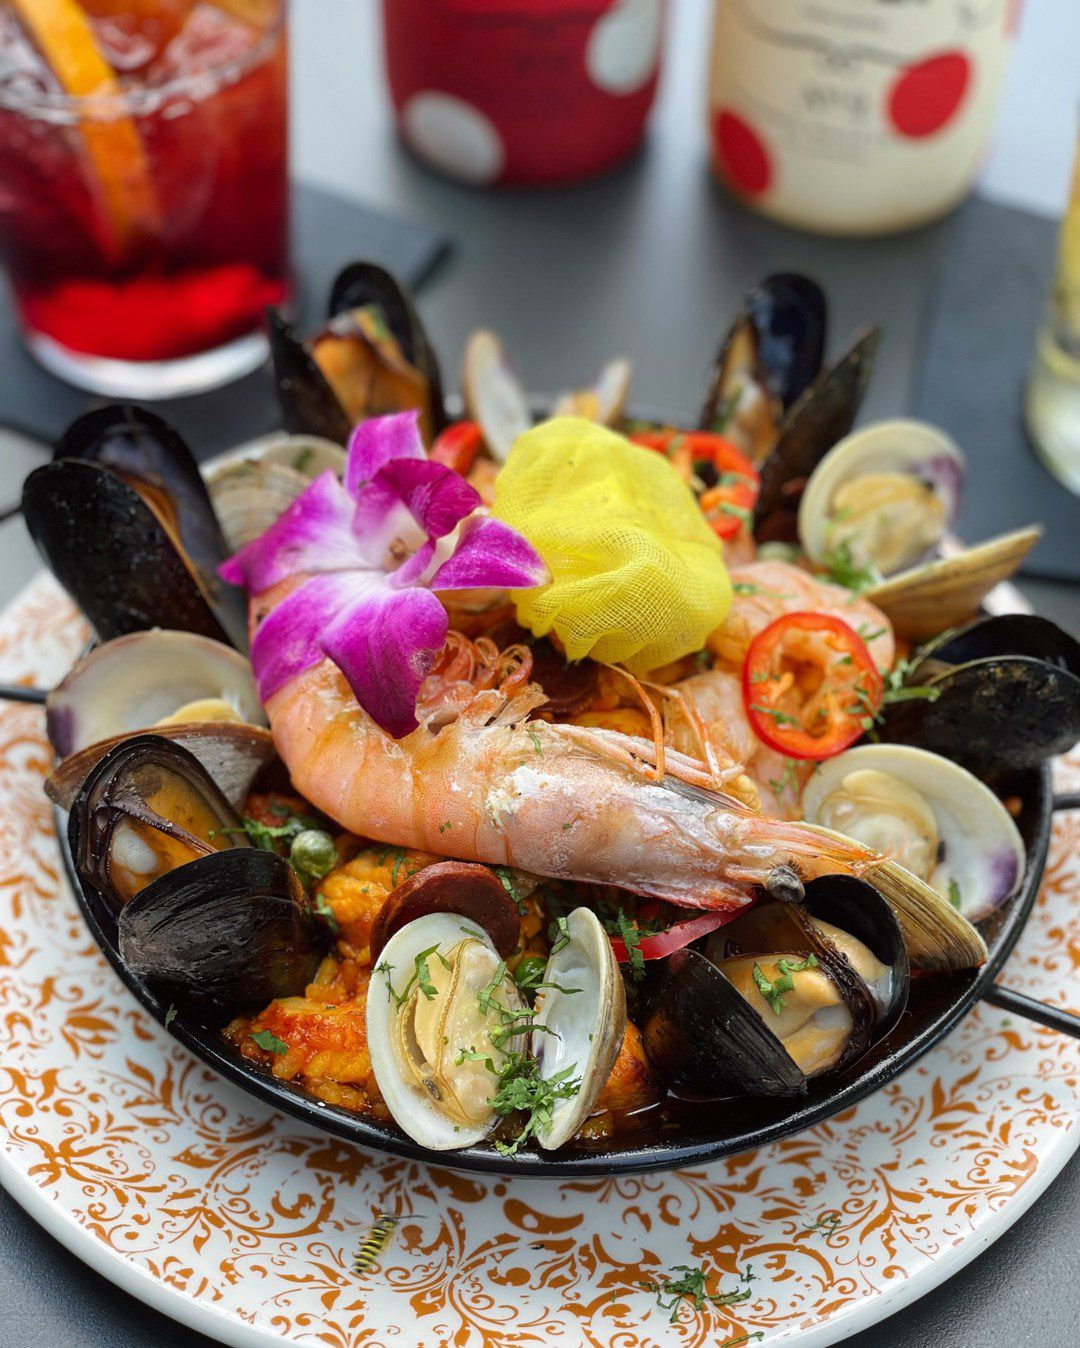 Individual sized portion of paella with whole shrimp, mussels and clams topped with cherry tomatoes and a hibiscus flower